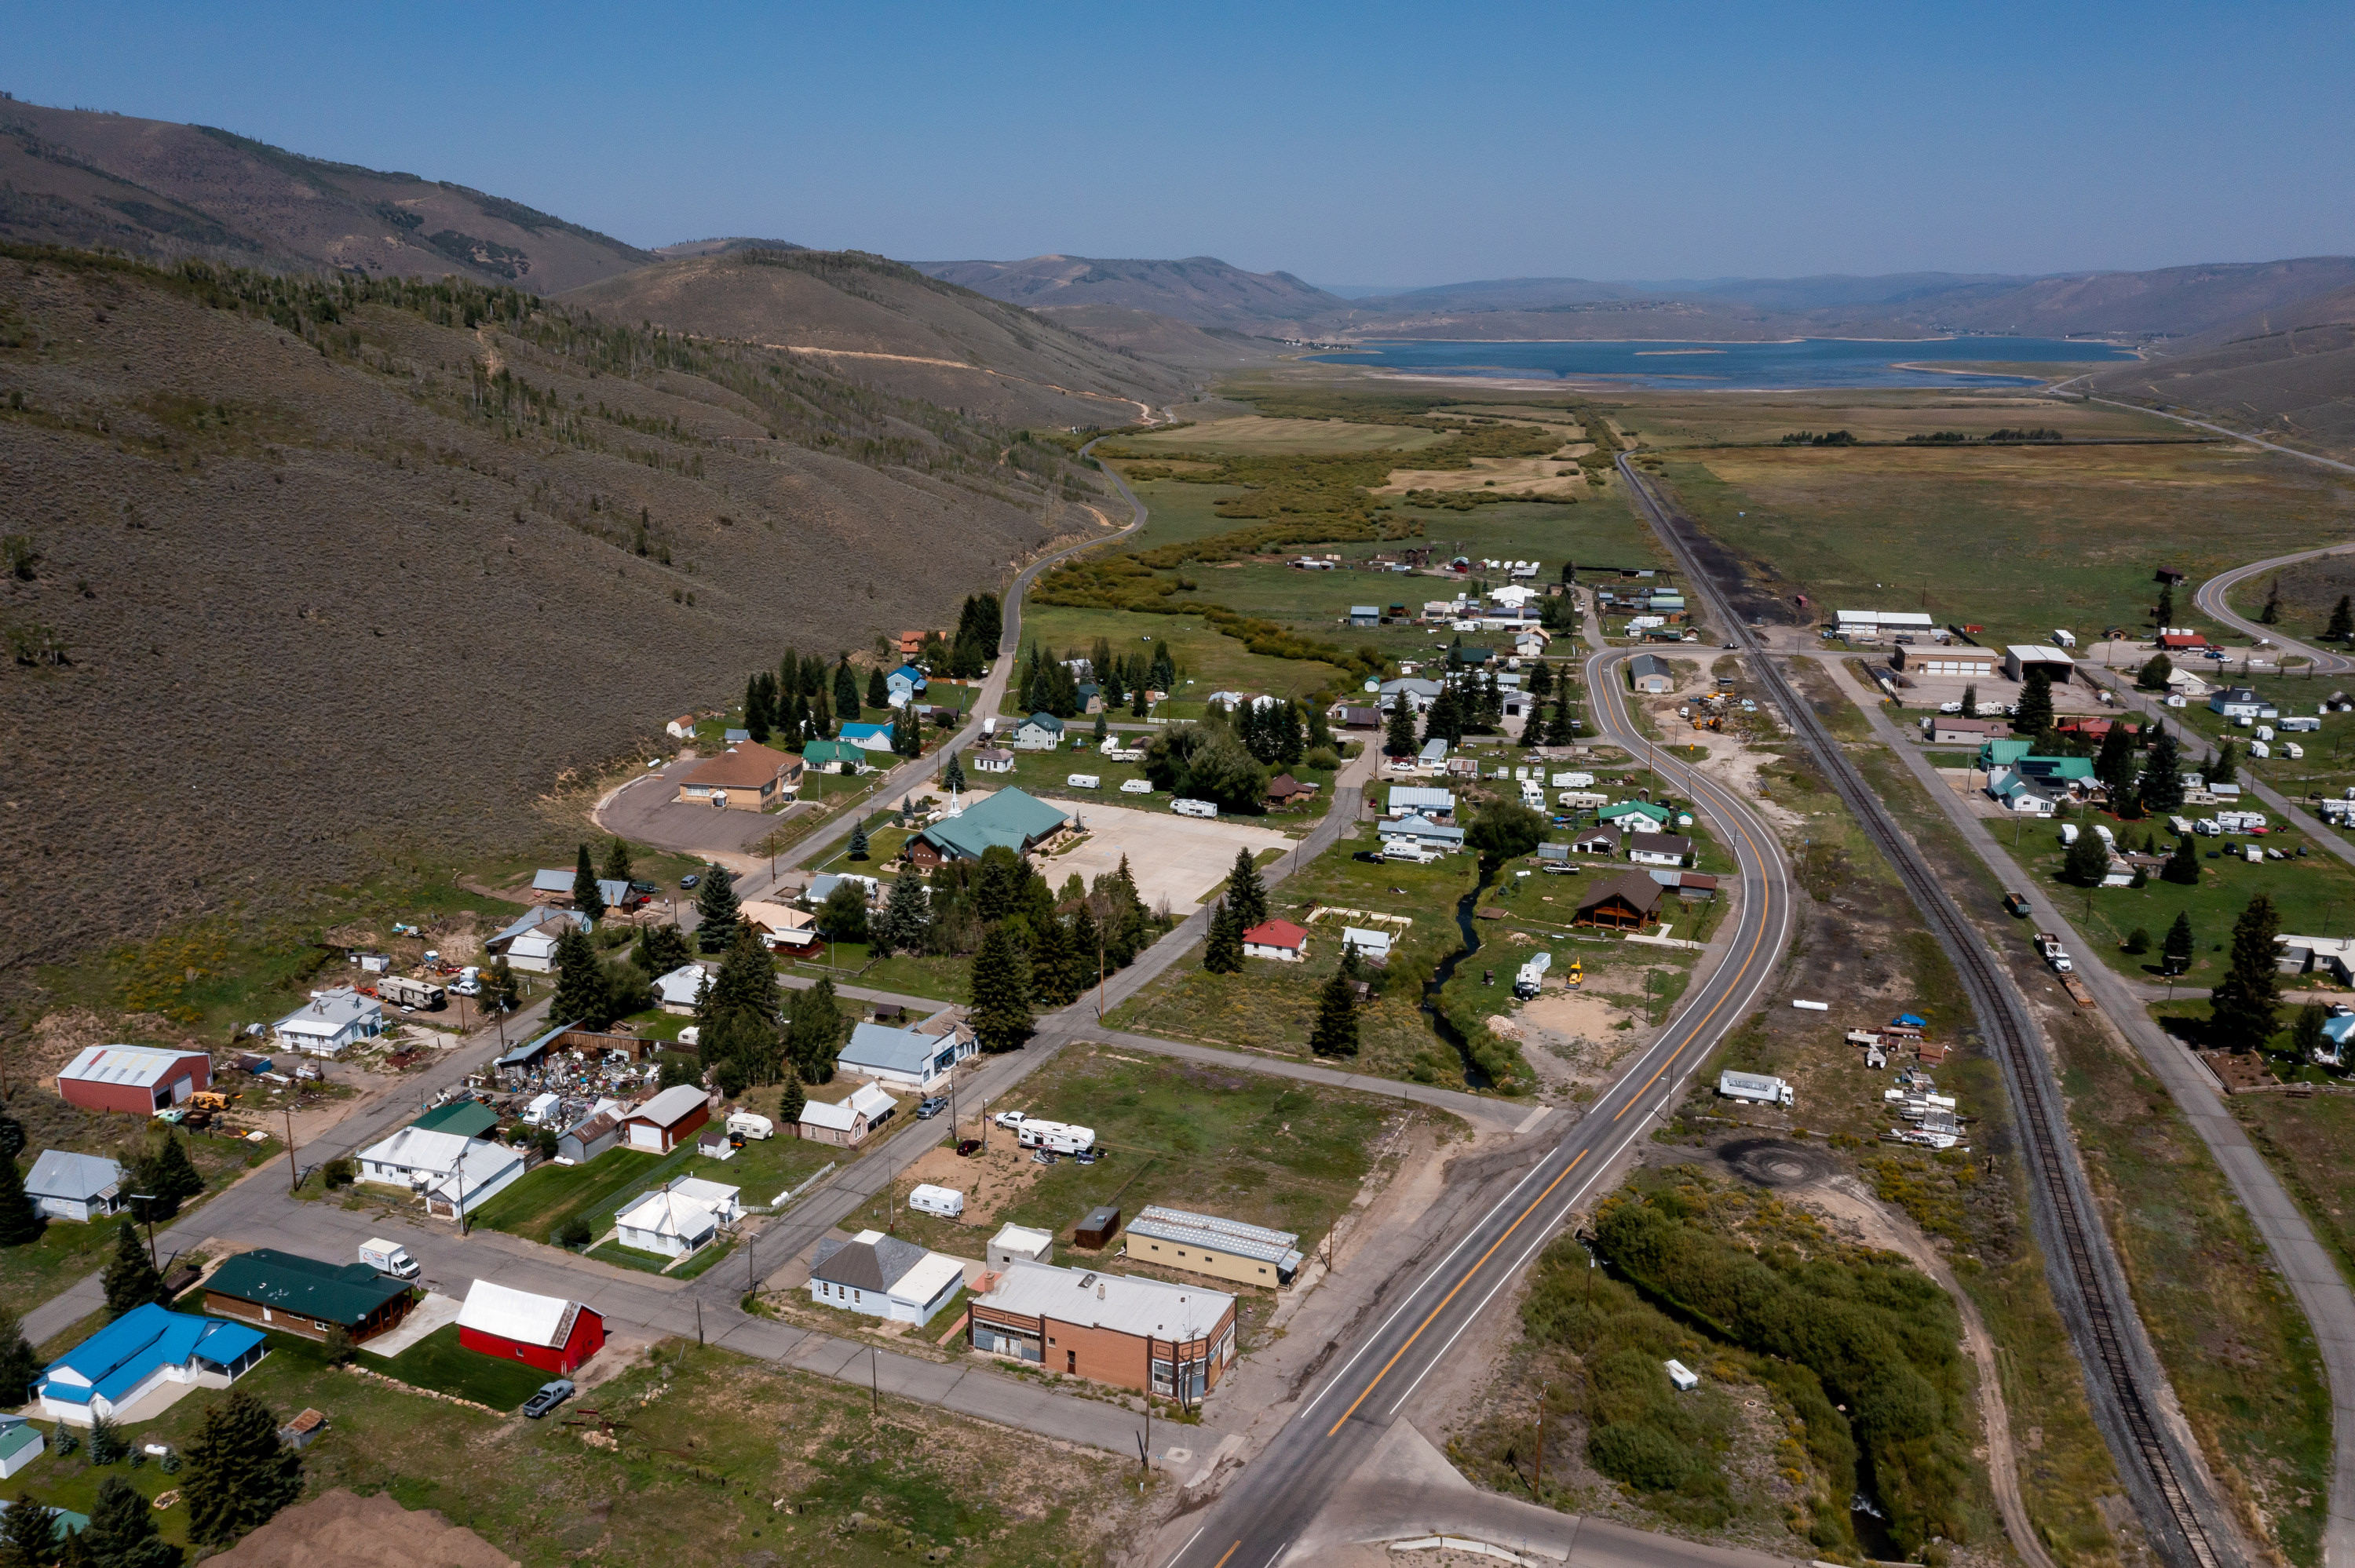 The town of Scofield, with the Scofield Reservoir visible in the background, is pictured on Friday, Aug. 27, 2021. The town's malfunctioning well is back up and pumping after its failure earlier in the month led to water shortages in the town.